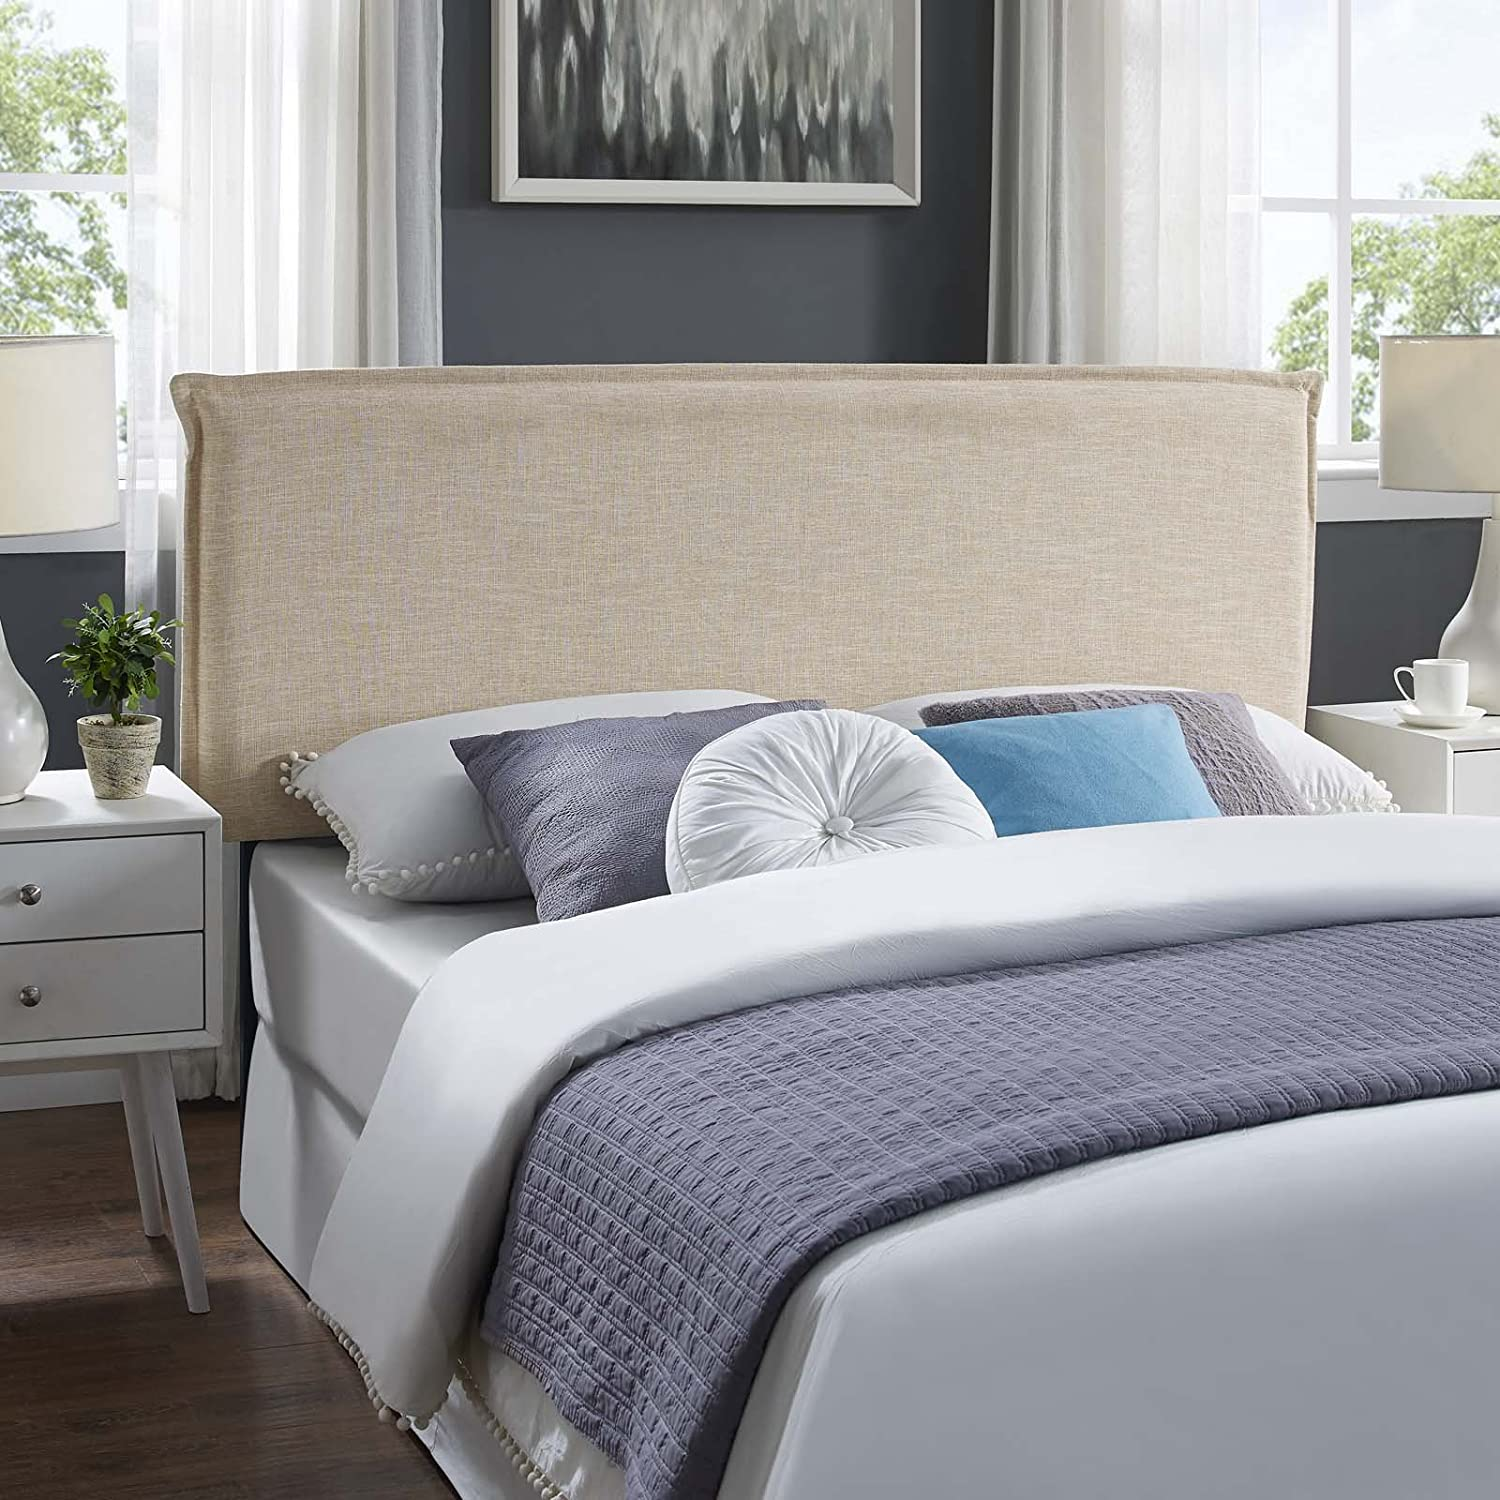 Modway Camille Linen Fabric Upholstered Queen Headboard in Beige with French Piping